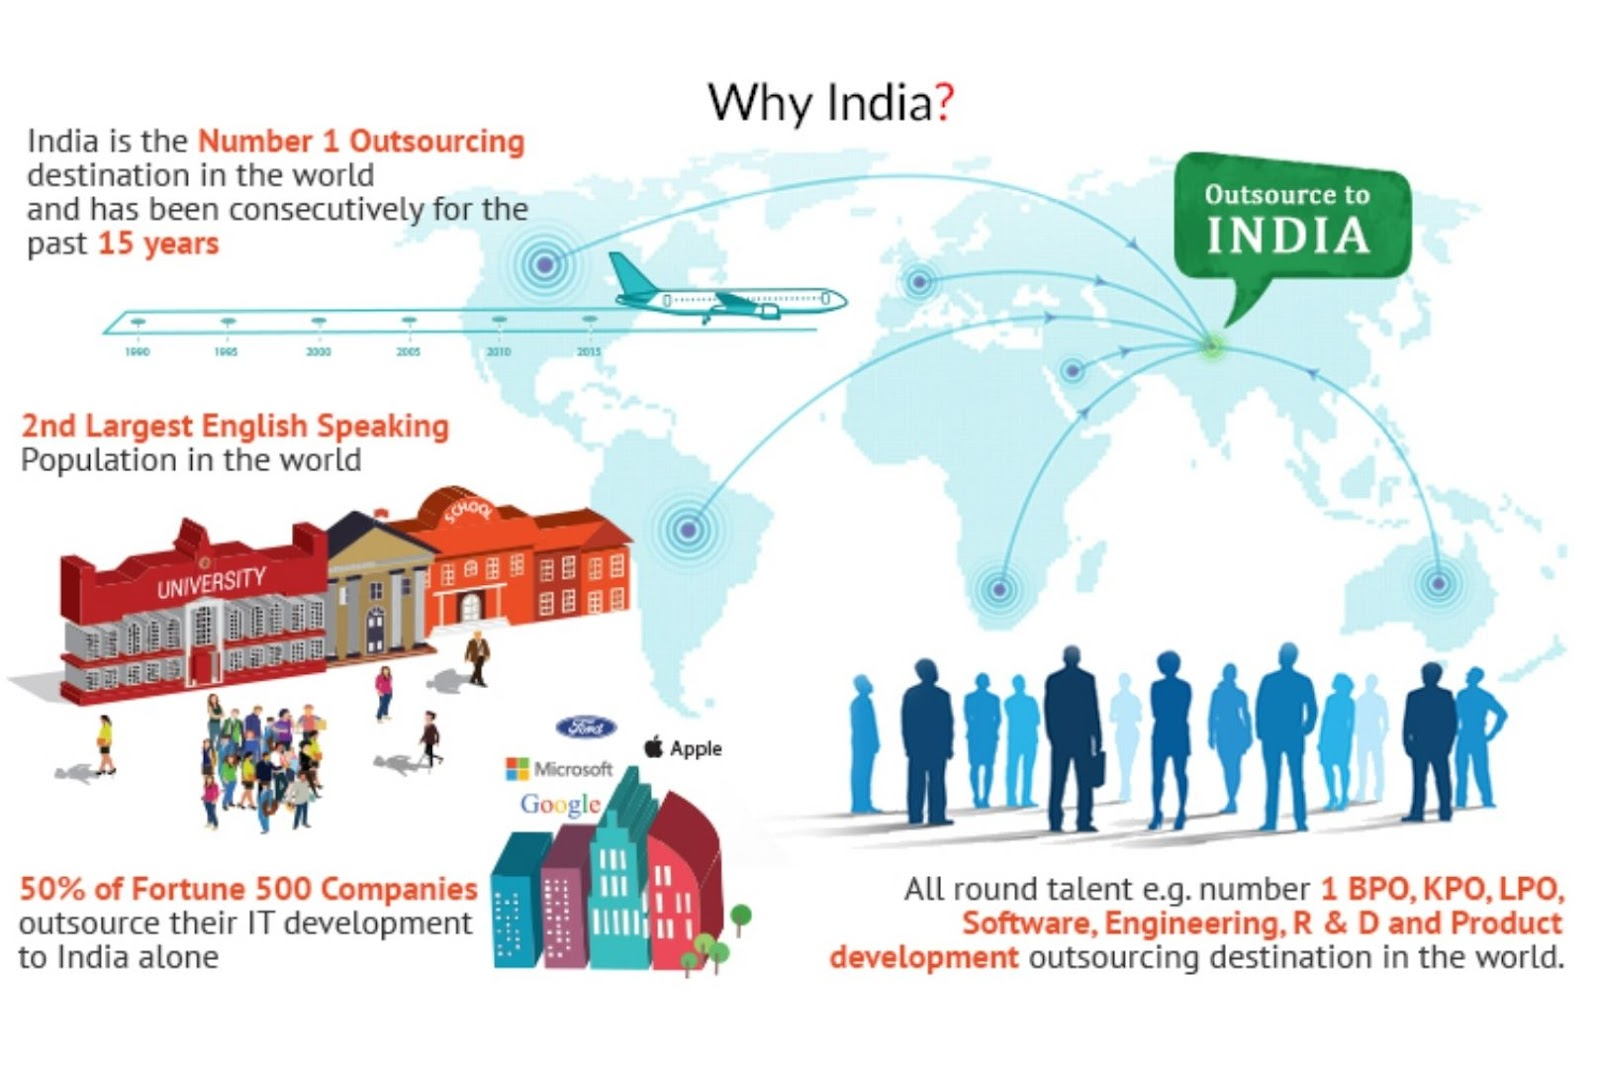 India has the Global favorite for offshore development